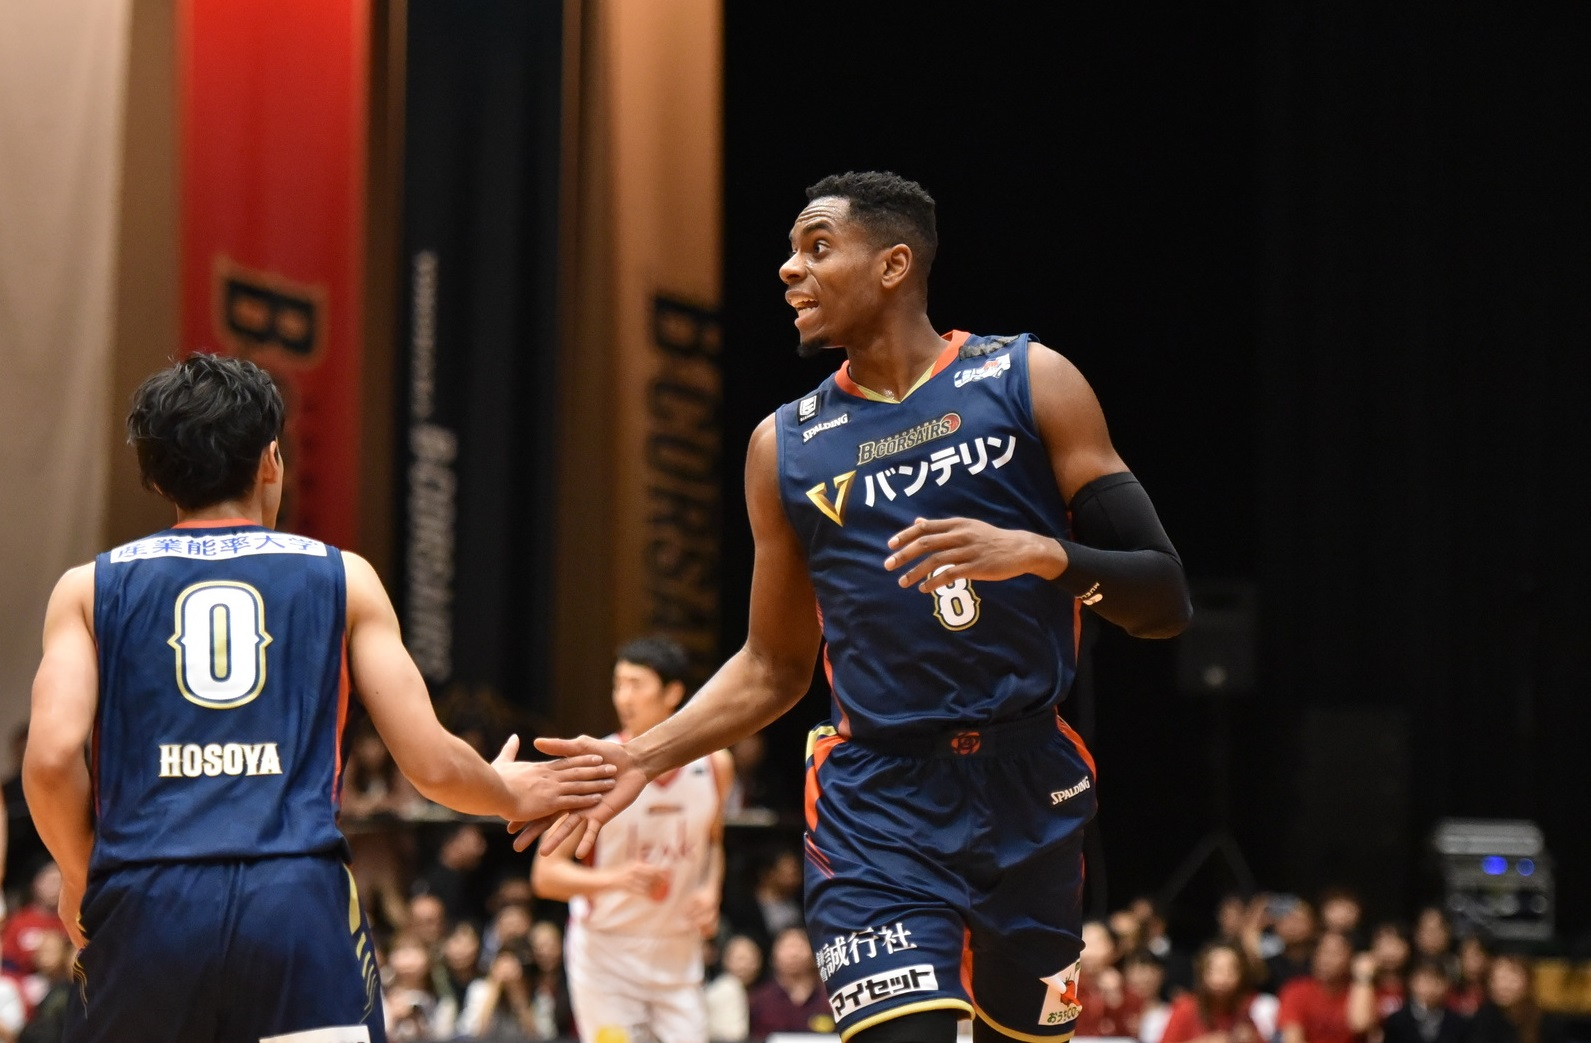 B-Corsairs forward Amanze Egekeze, seen during Wednesday's game at Yokohama Cultural Gymnasium, is averaging 17.8 points and 7.3 rebounds per game. | B. LEAGUE